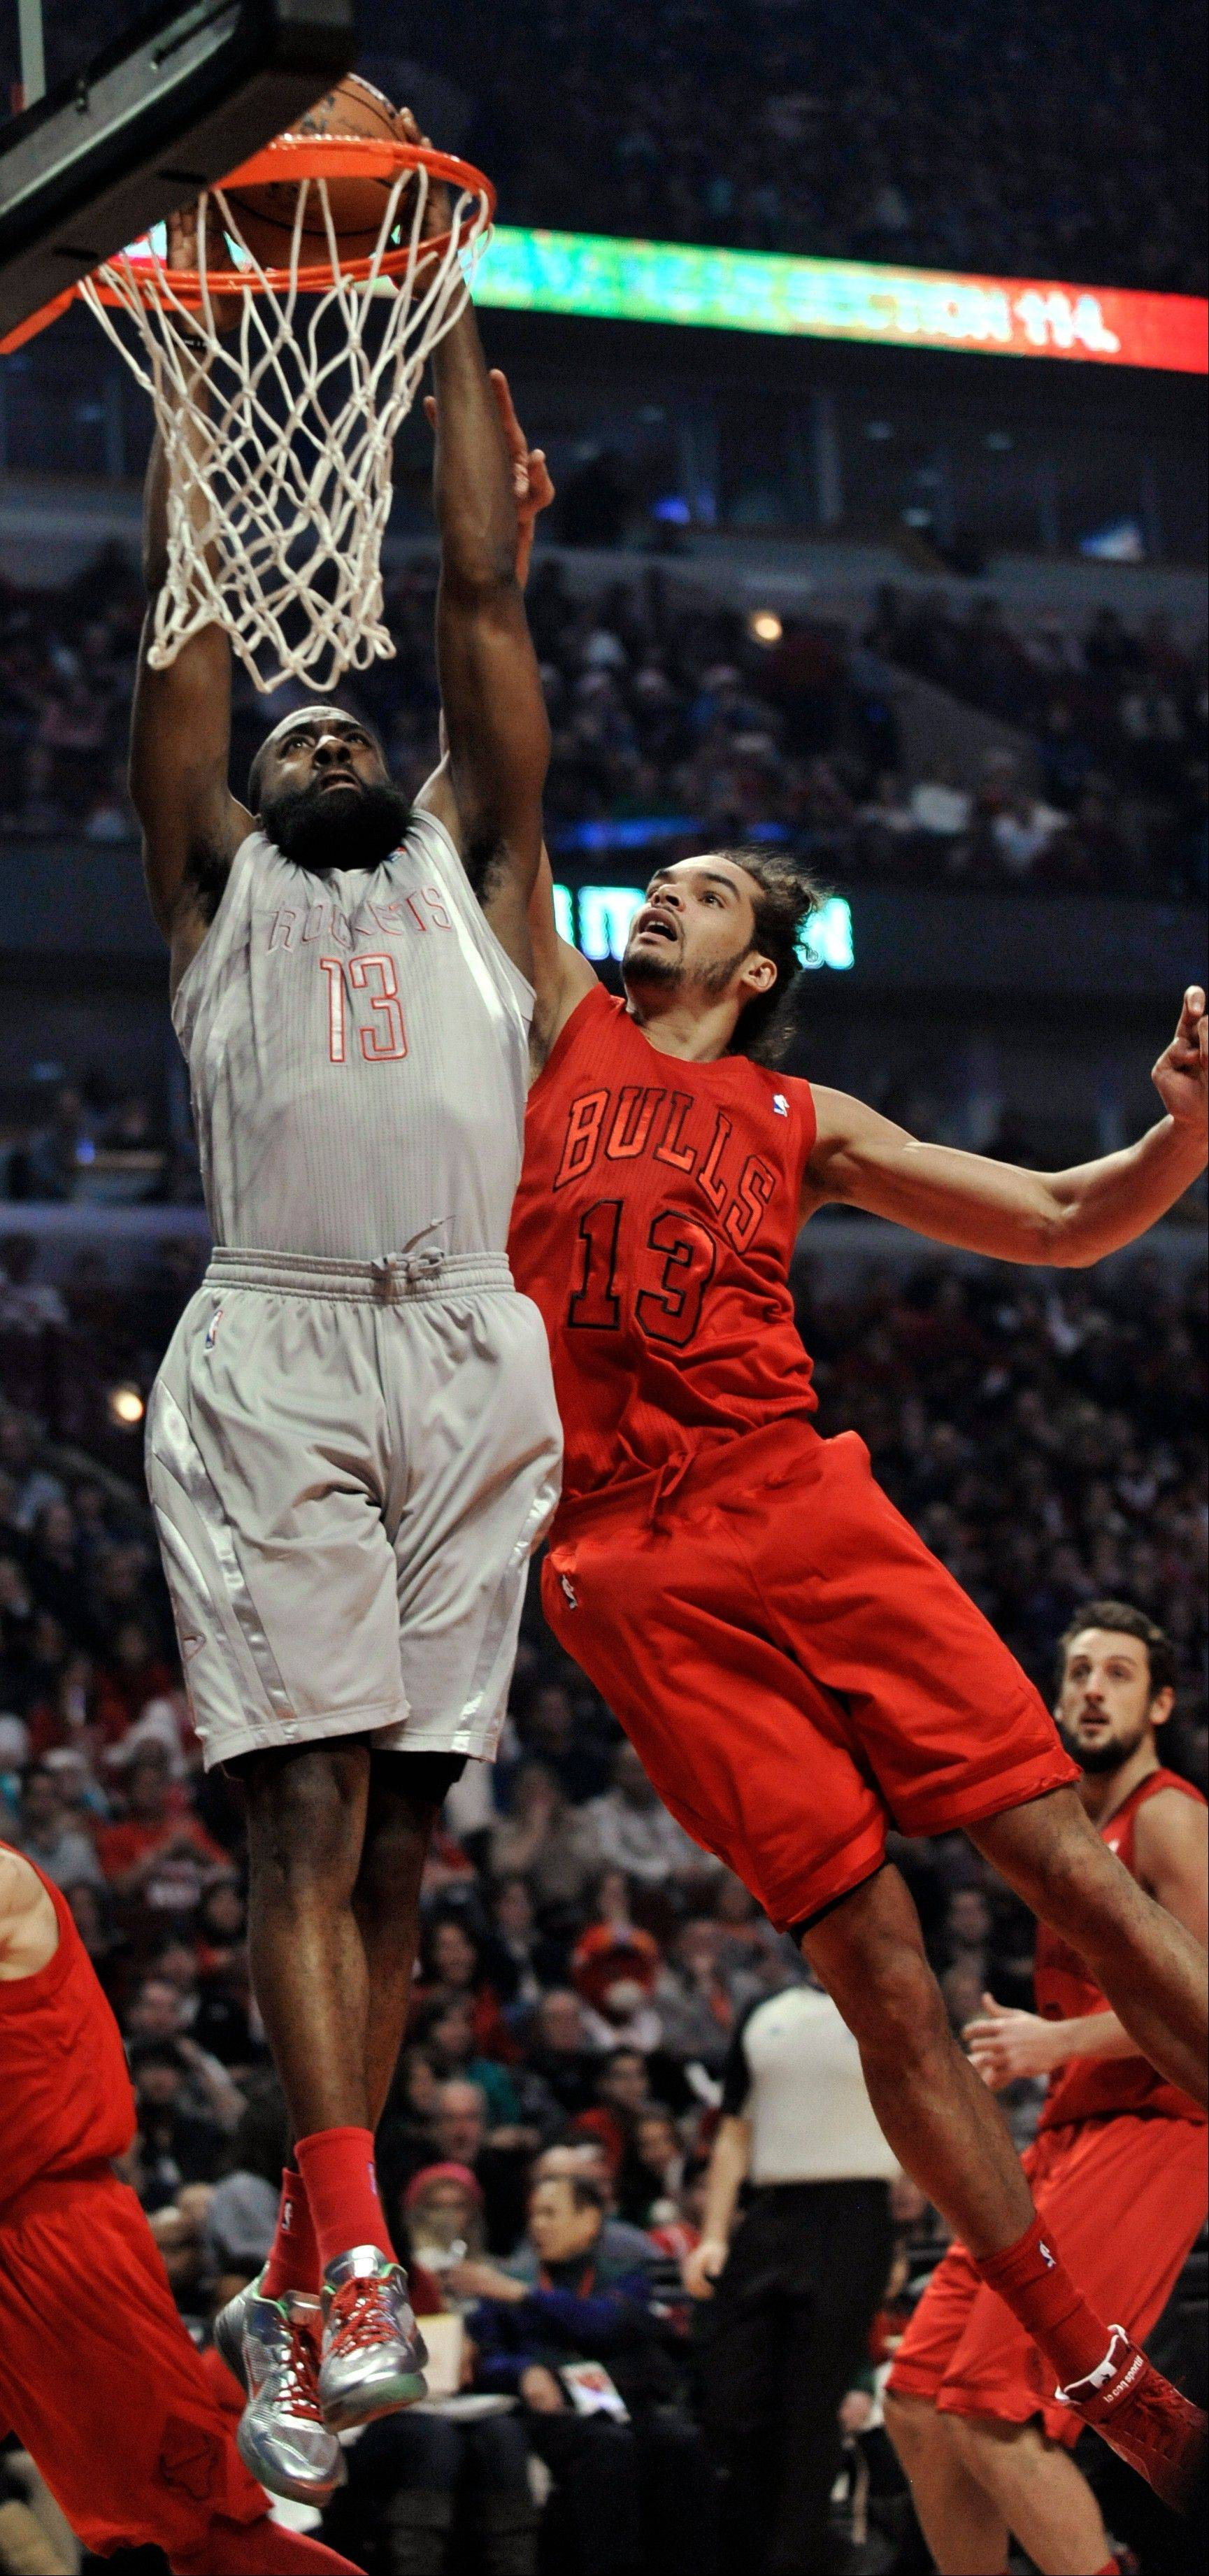 The Rockets' James Harden dunks over center Joakim Noah during the Bulls' 120-97 loss Tuesday night at the United Center.